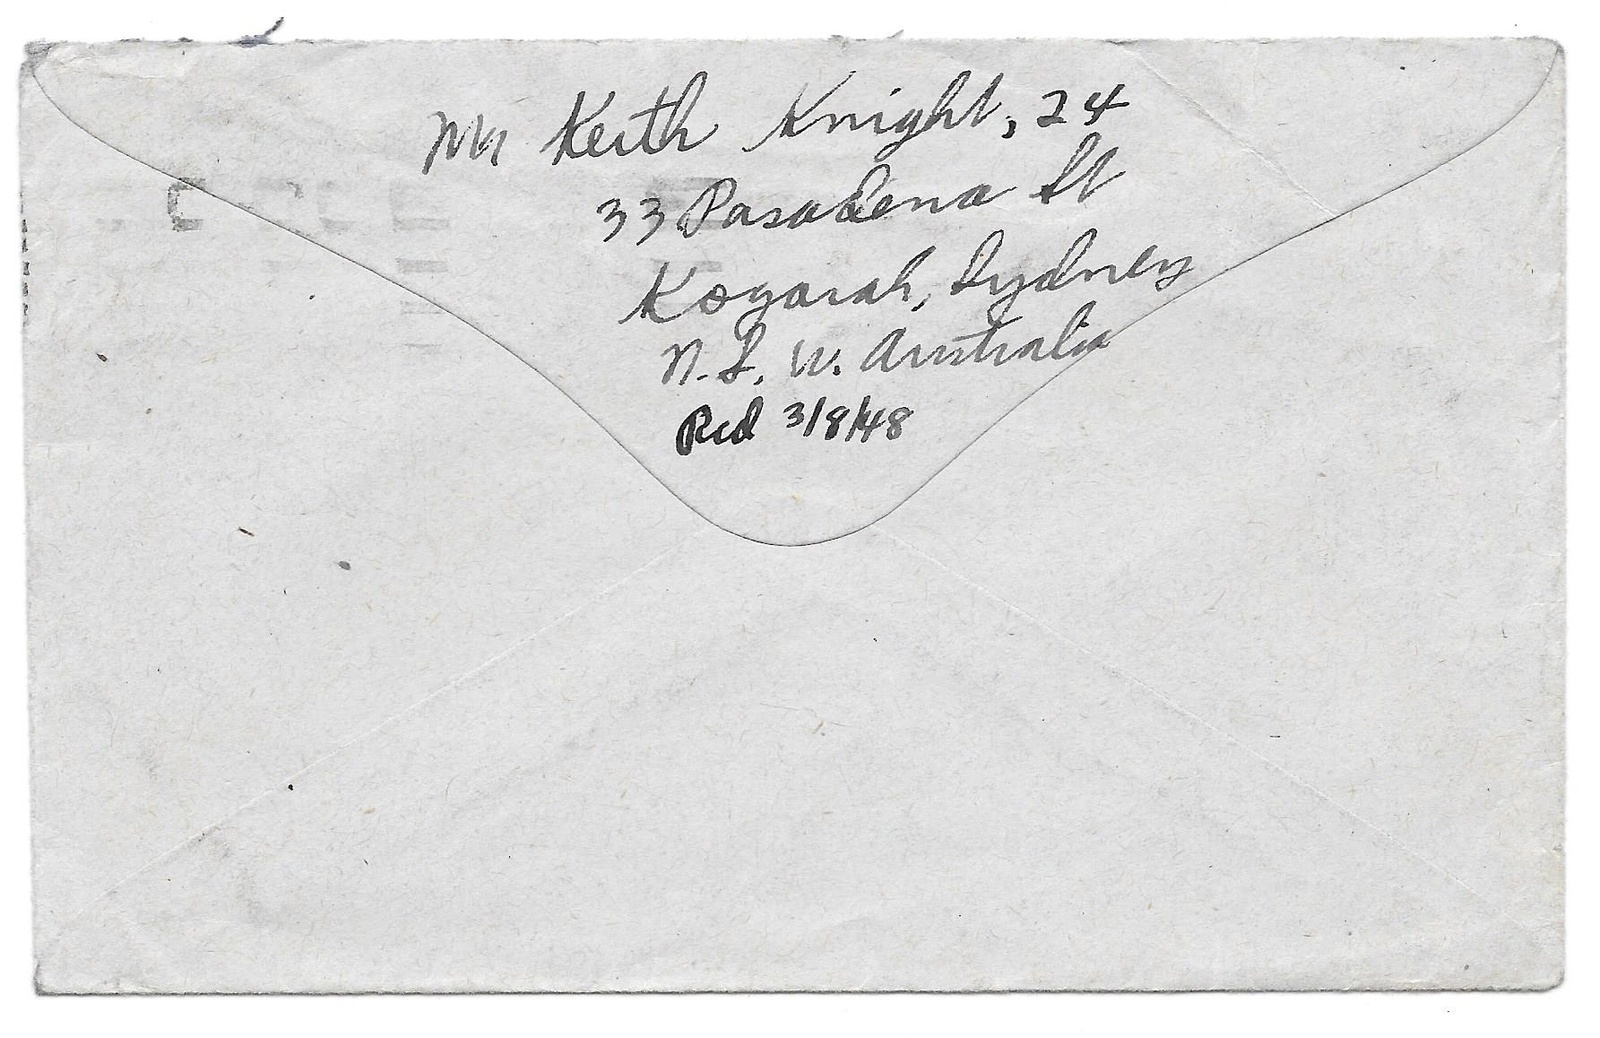 Australia NSW Sydney Posted in Overseas Box Postmark Machine Cancel 1948 Cover